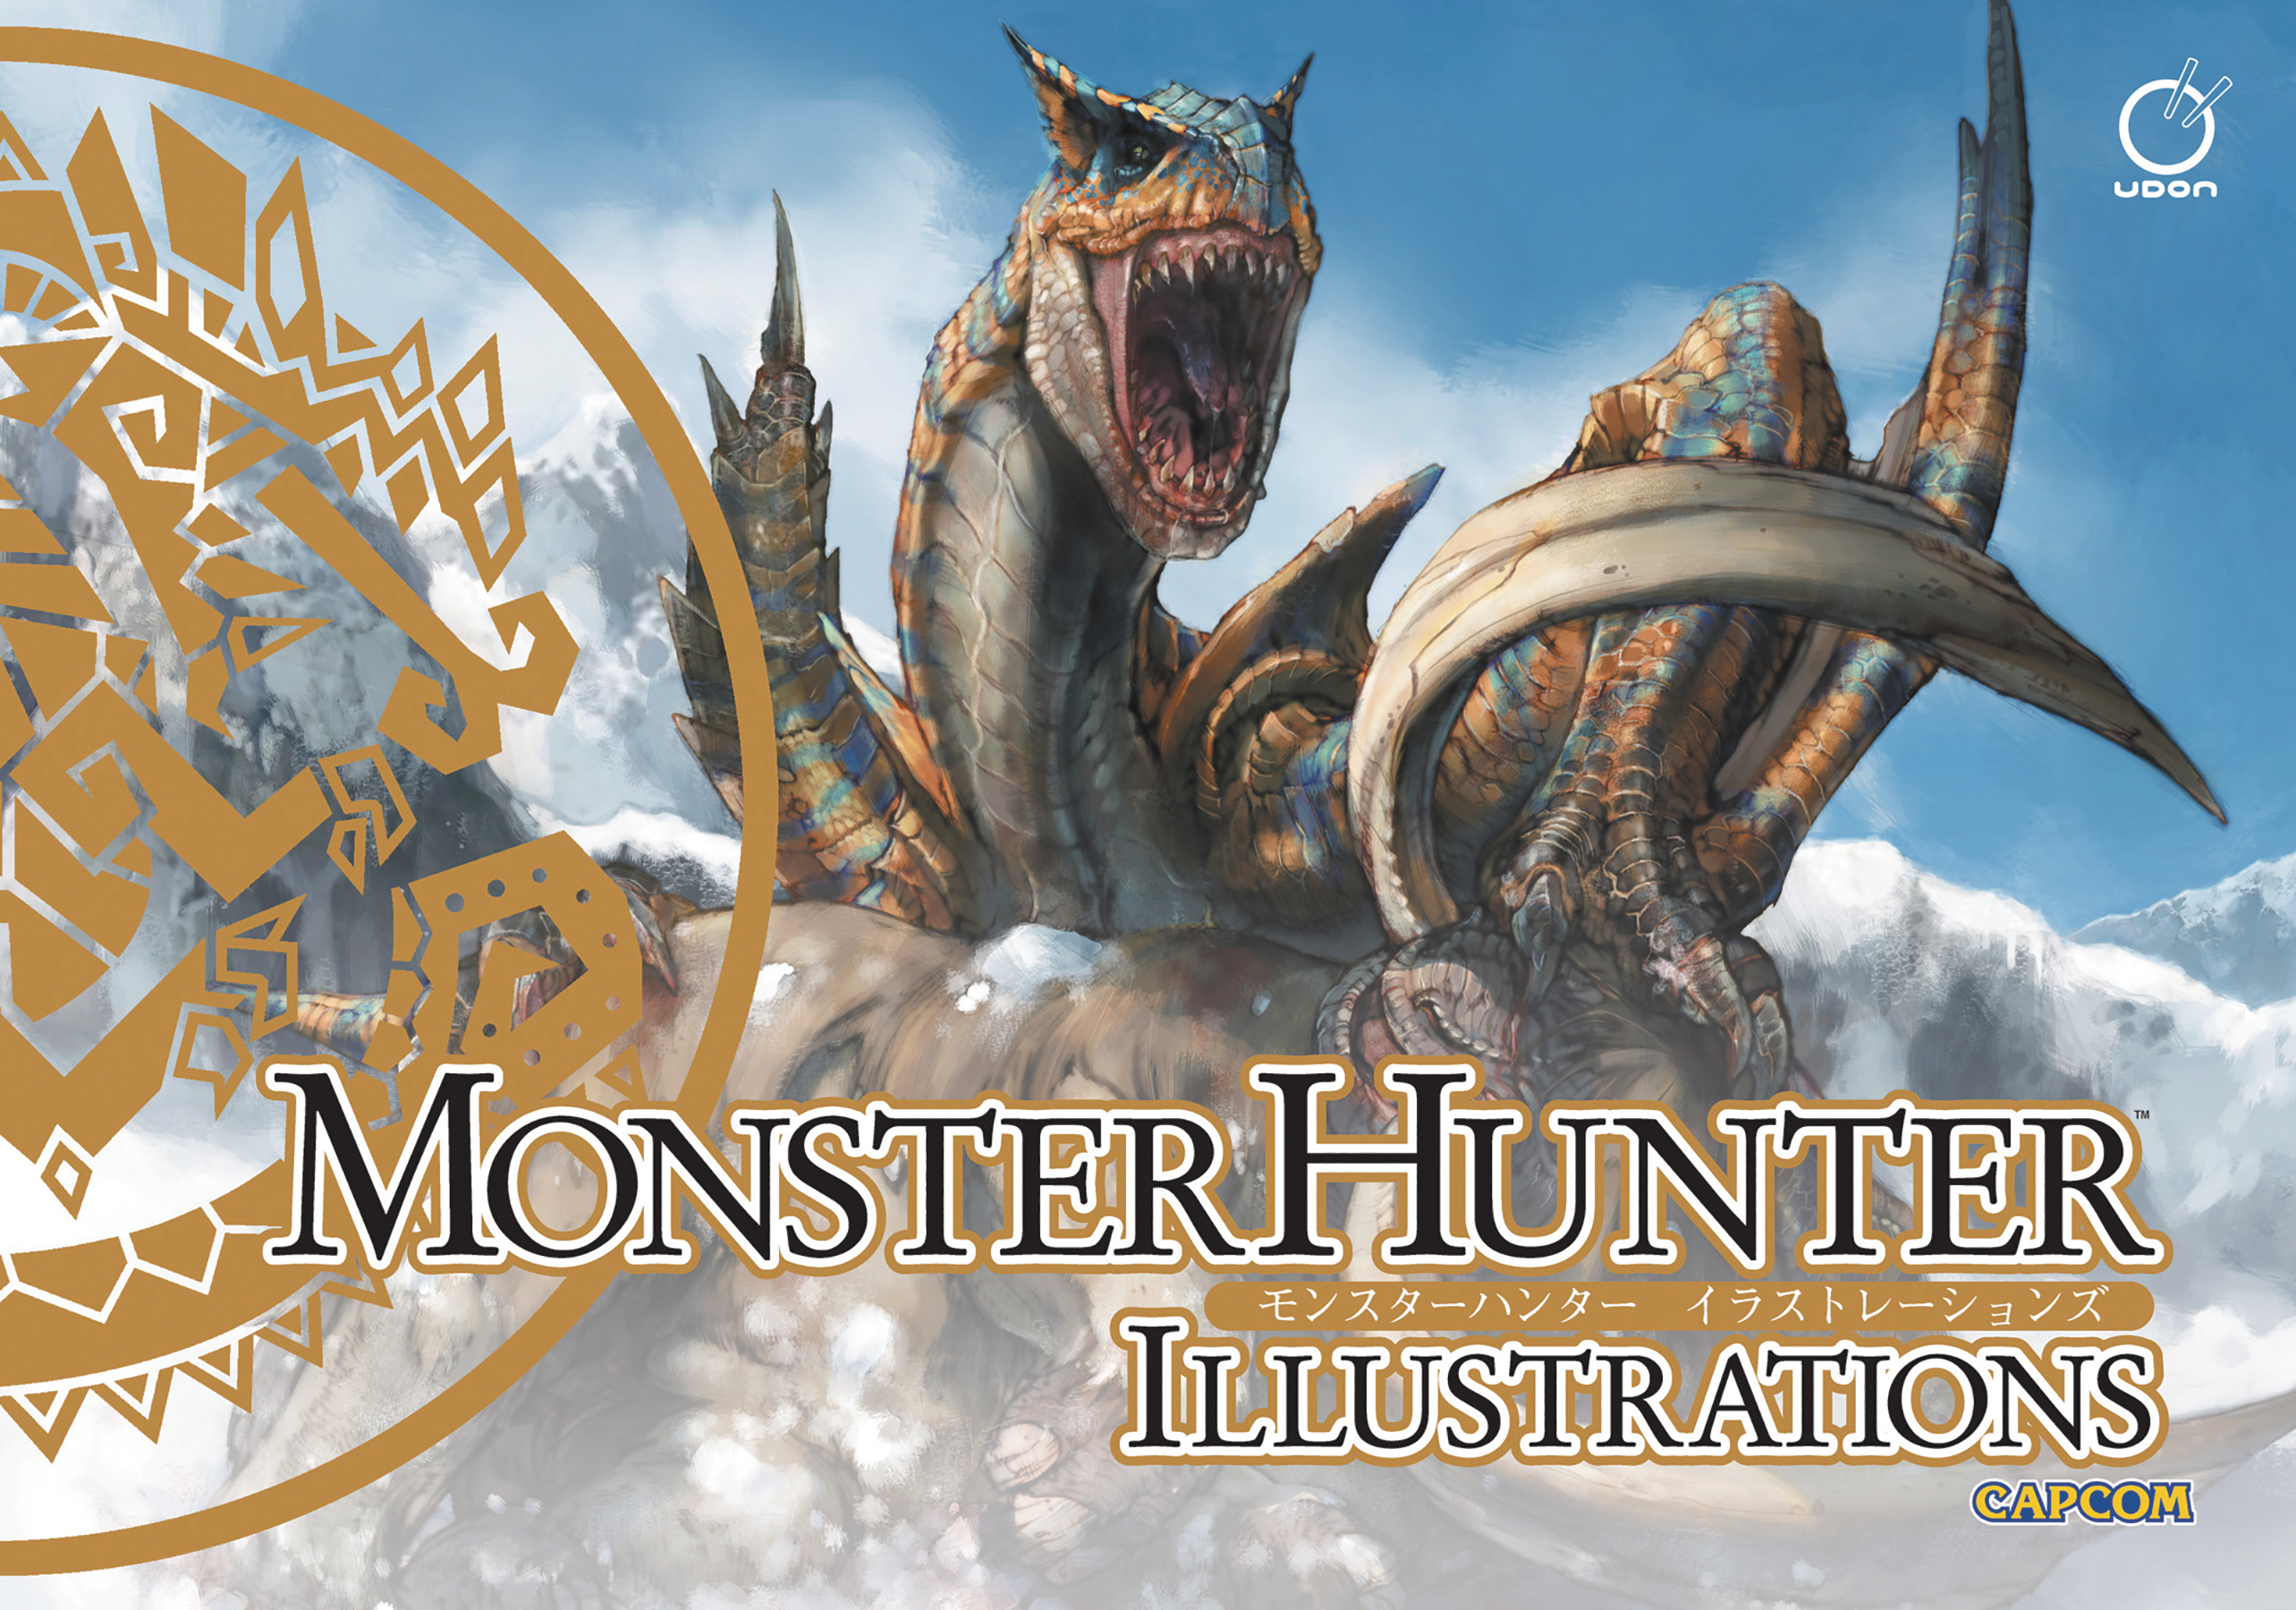 MONSTER HUNTER ILLUSTRATIONS HC